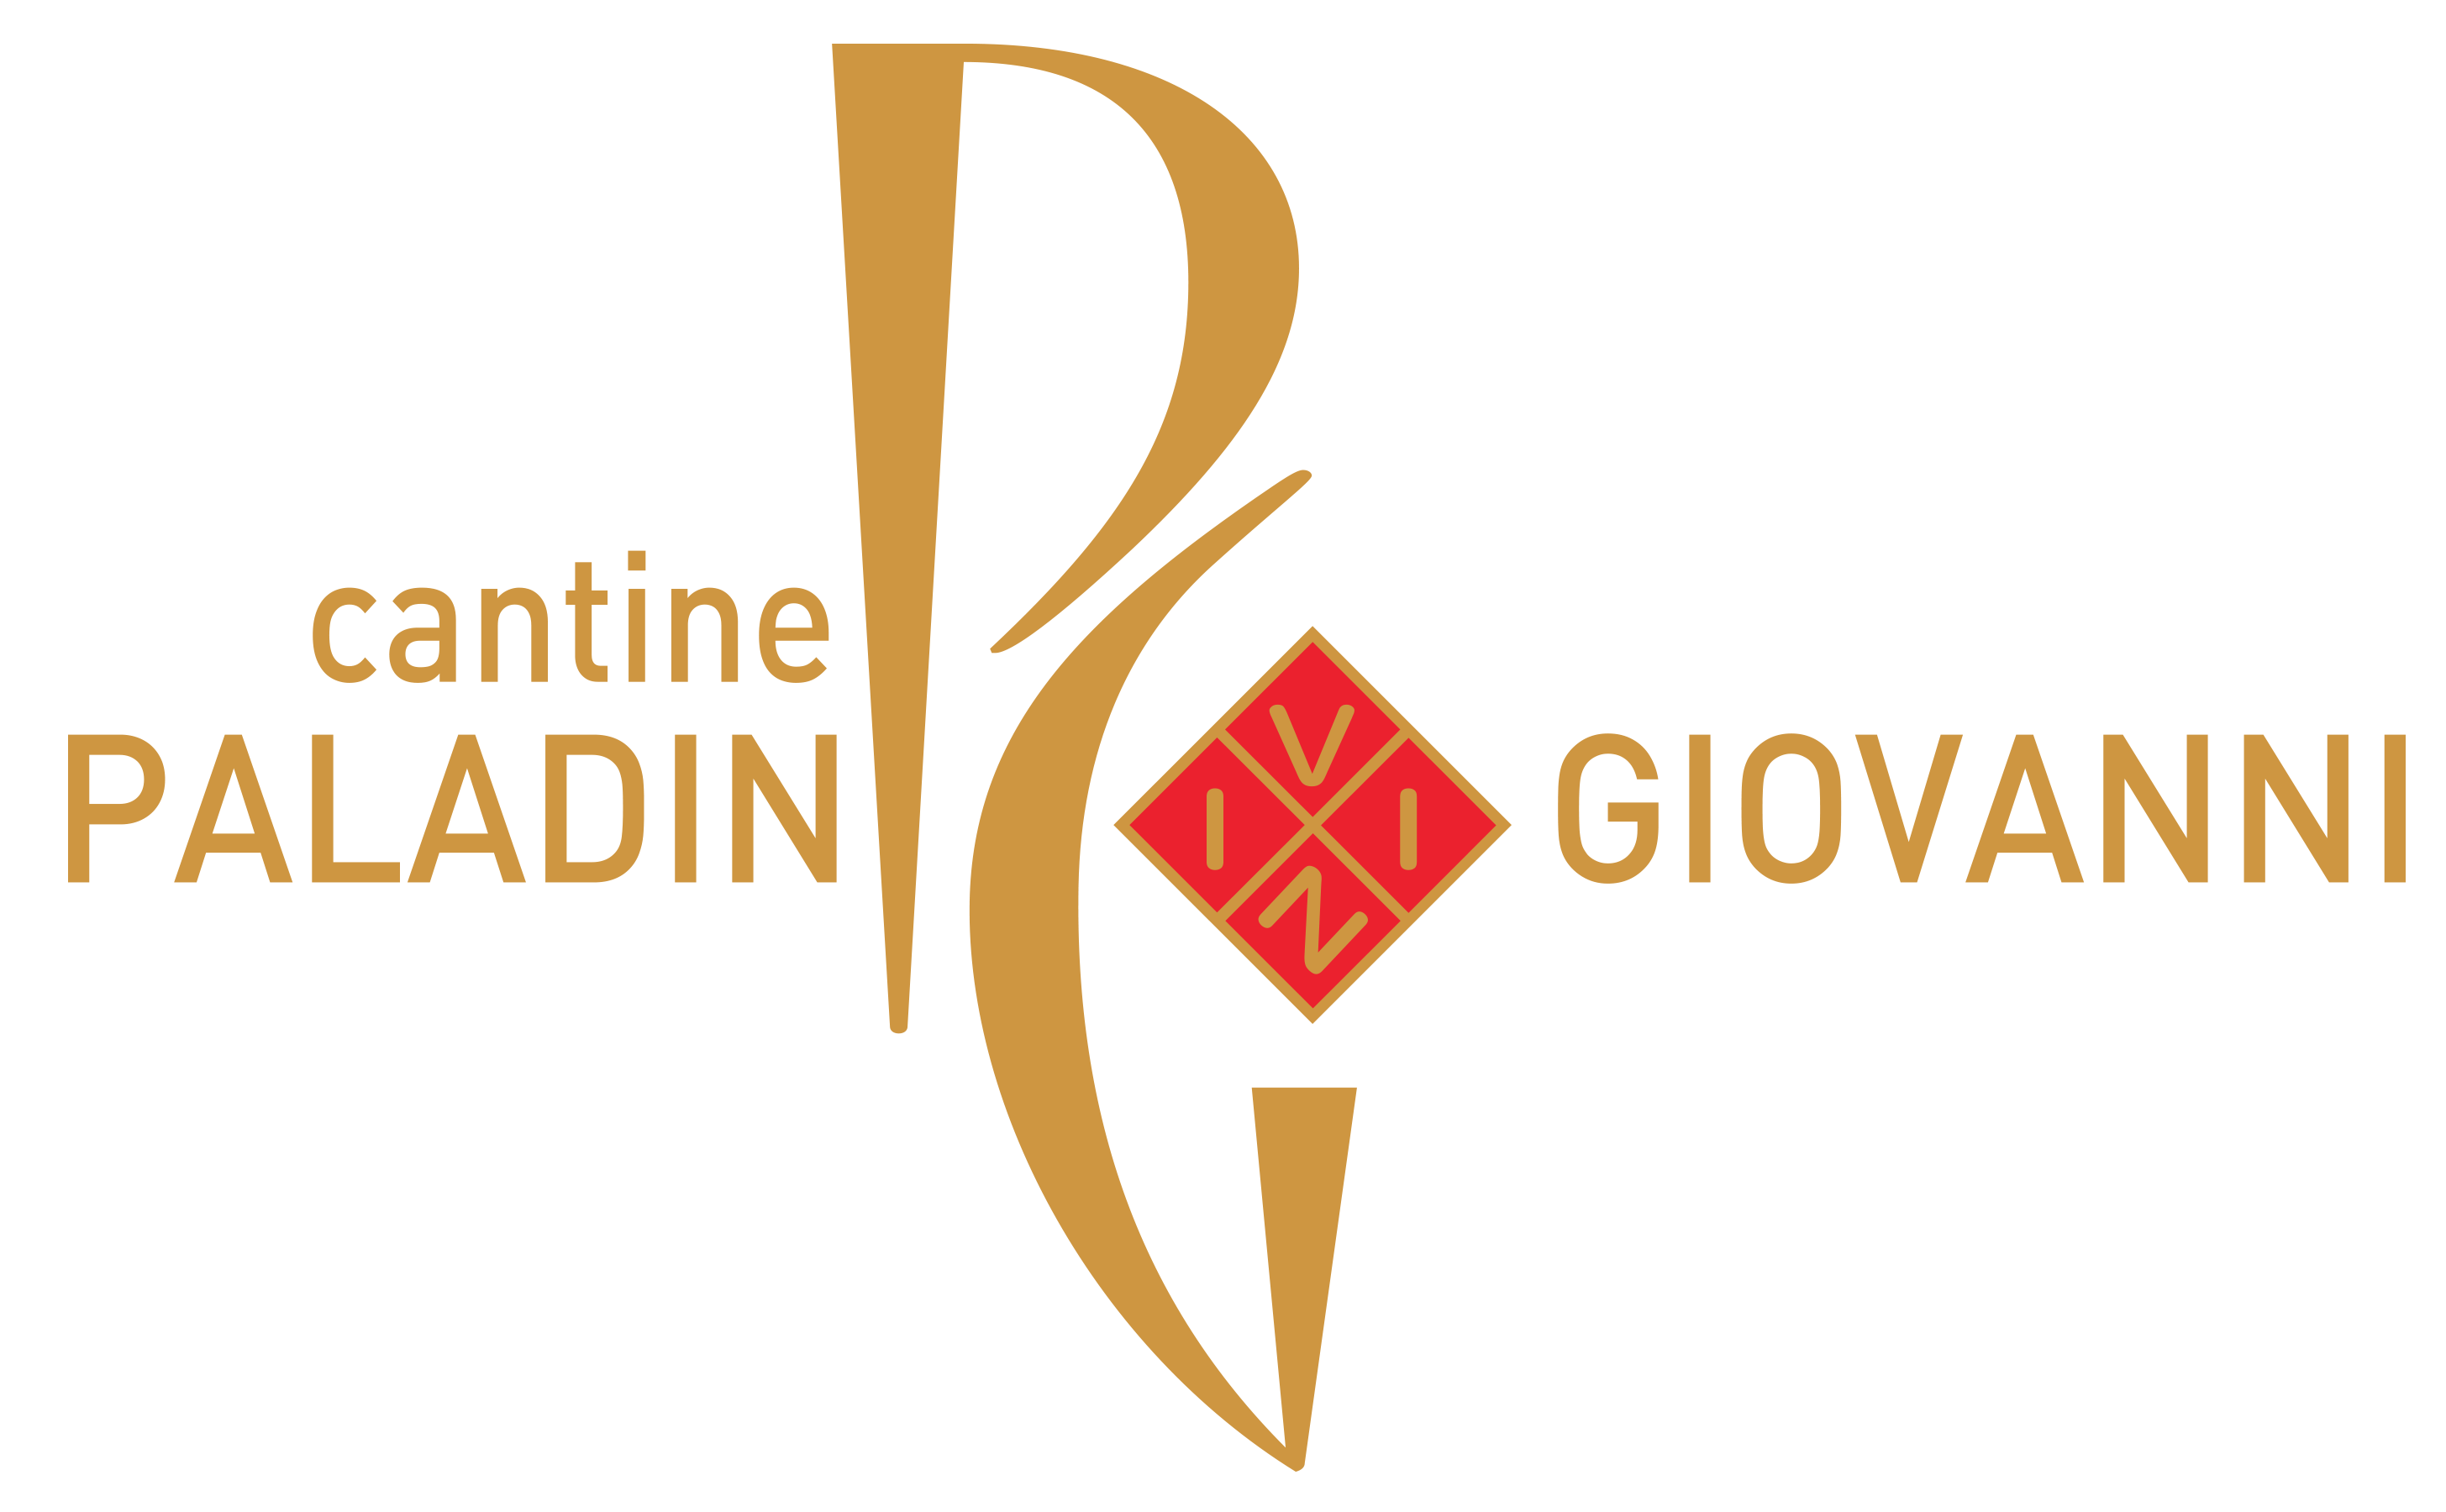 Cantine Paladin Giovanni - Sale bulk wines in tanks